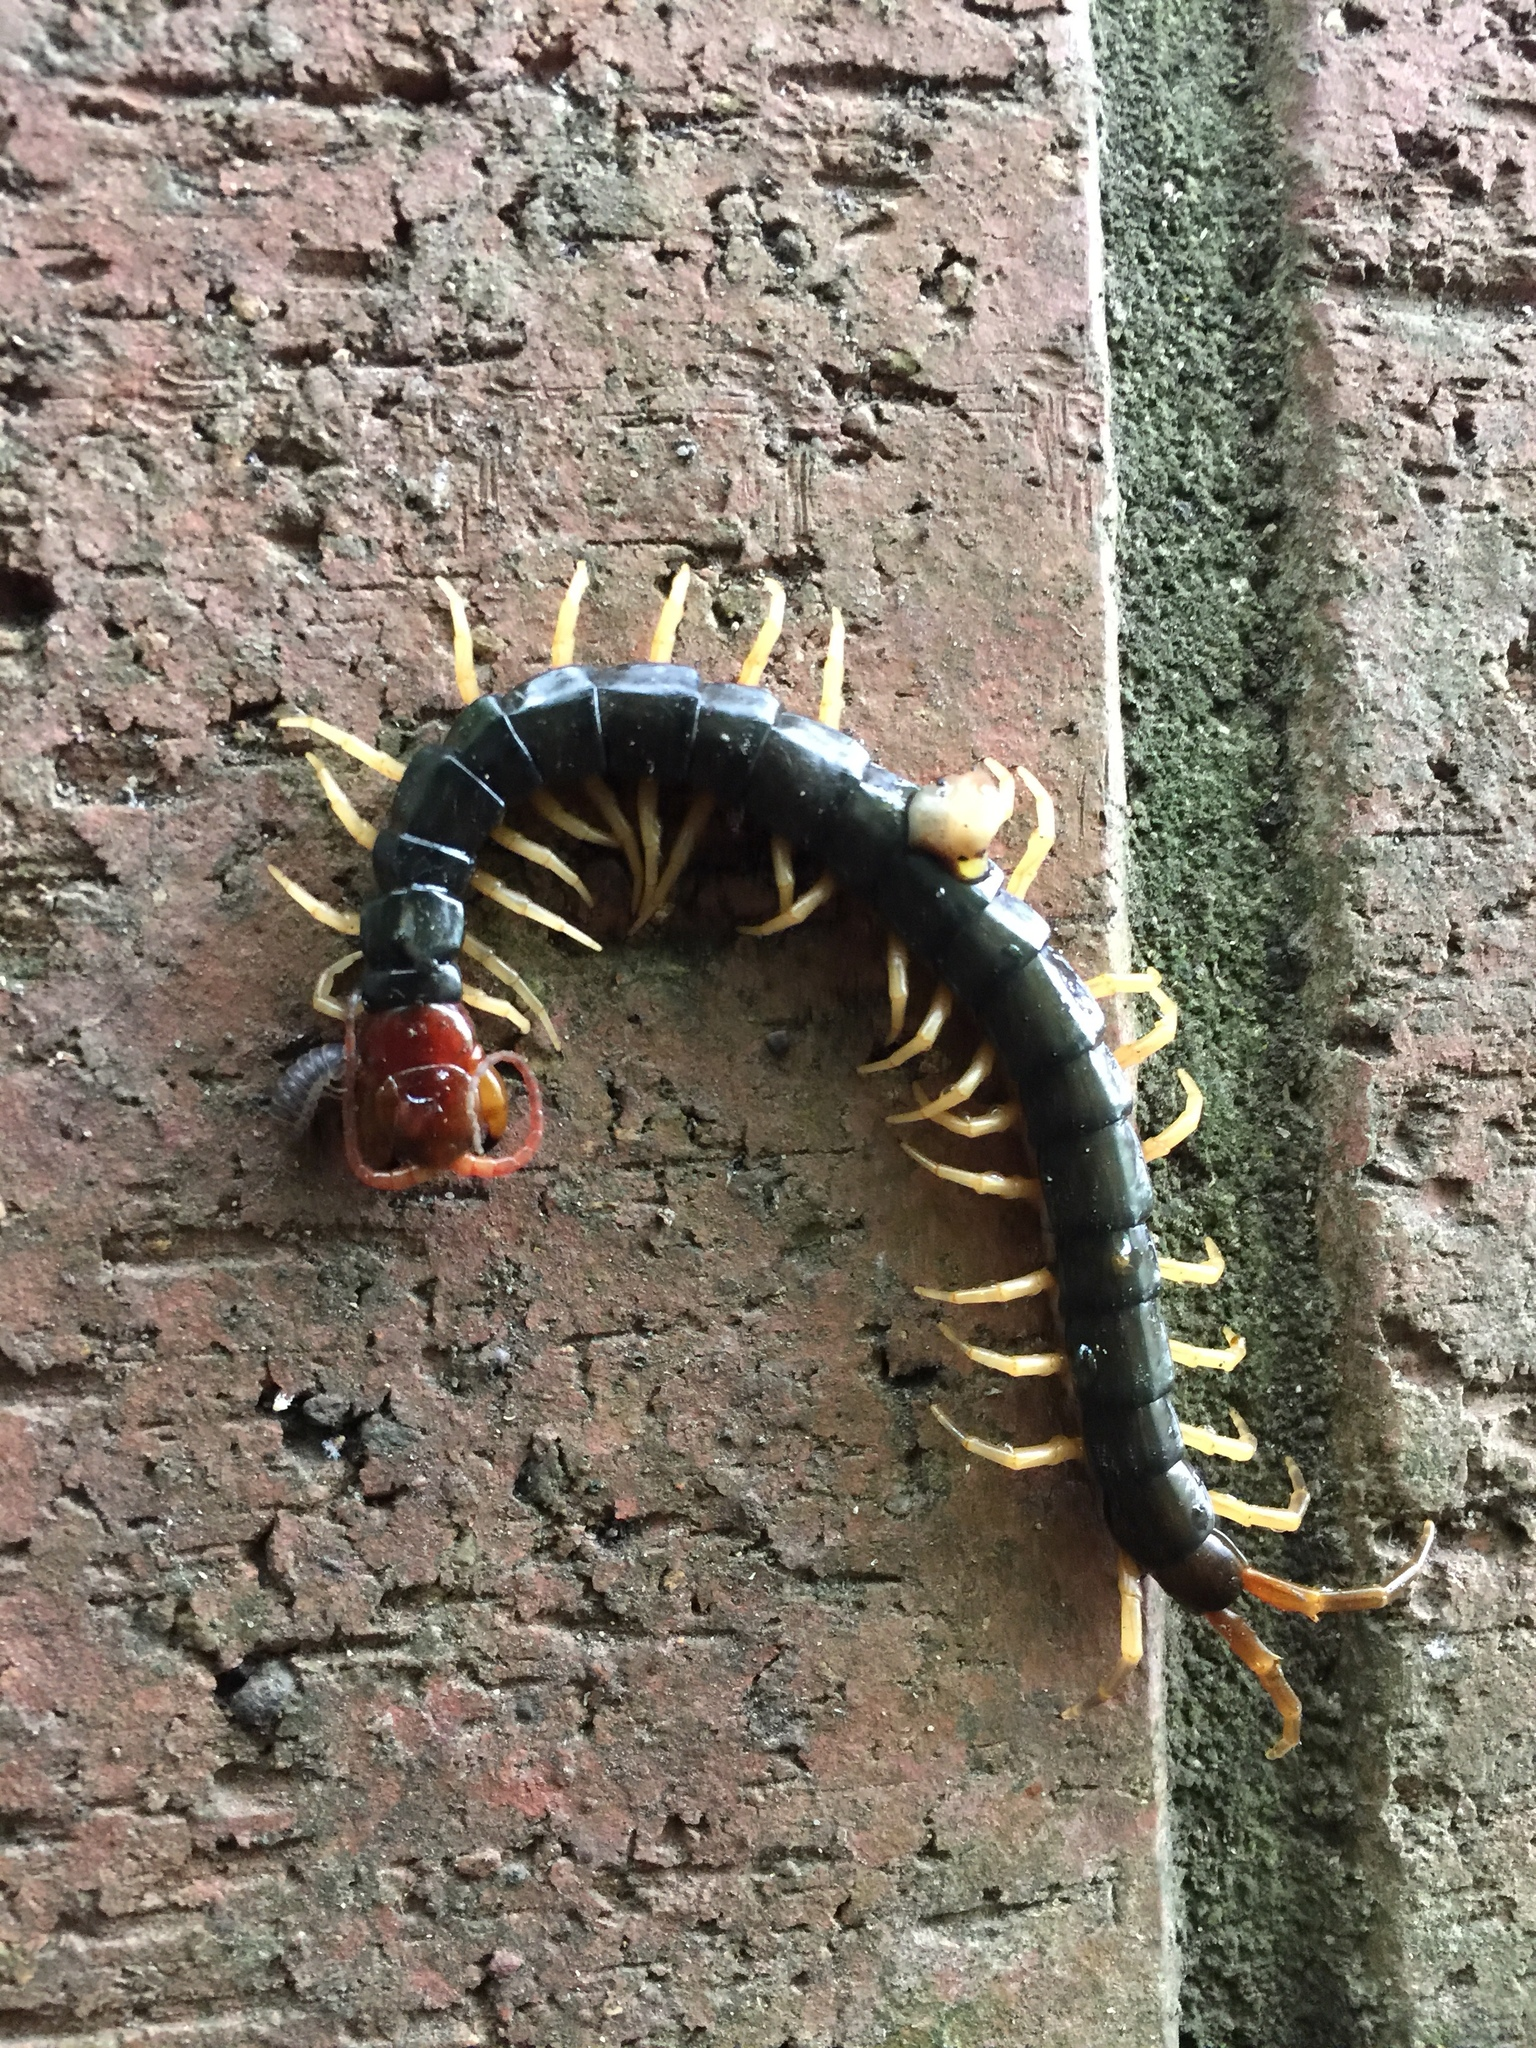 Chinese Red-headed Centipede (Subspecies Scolopendra